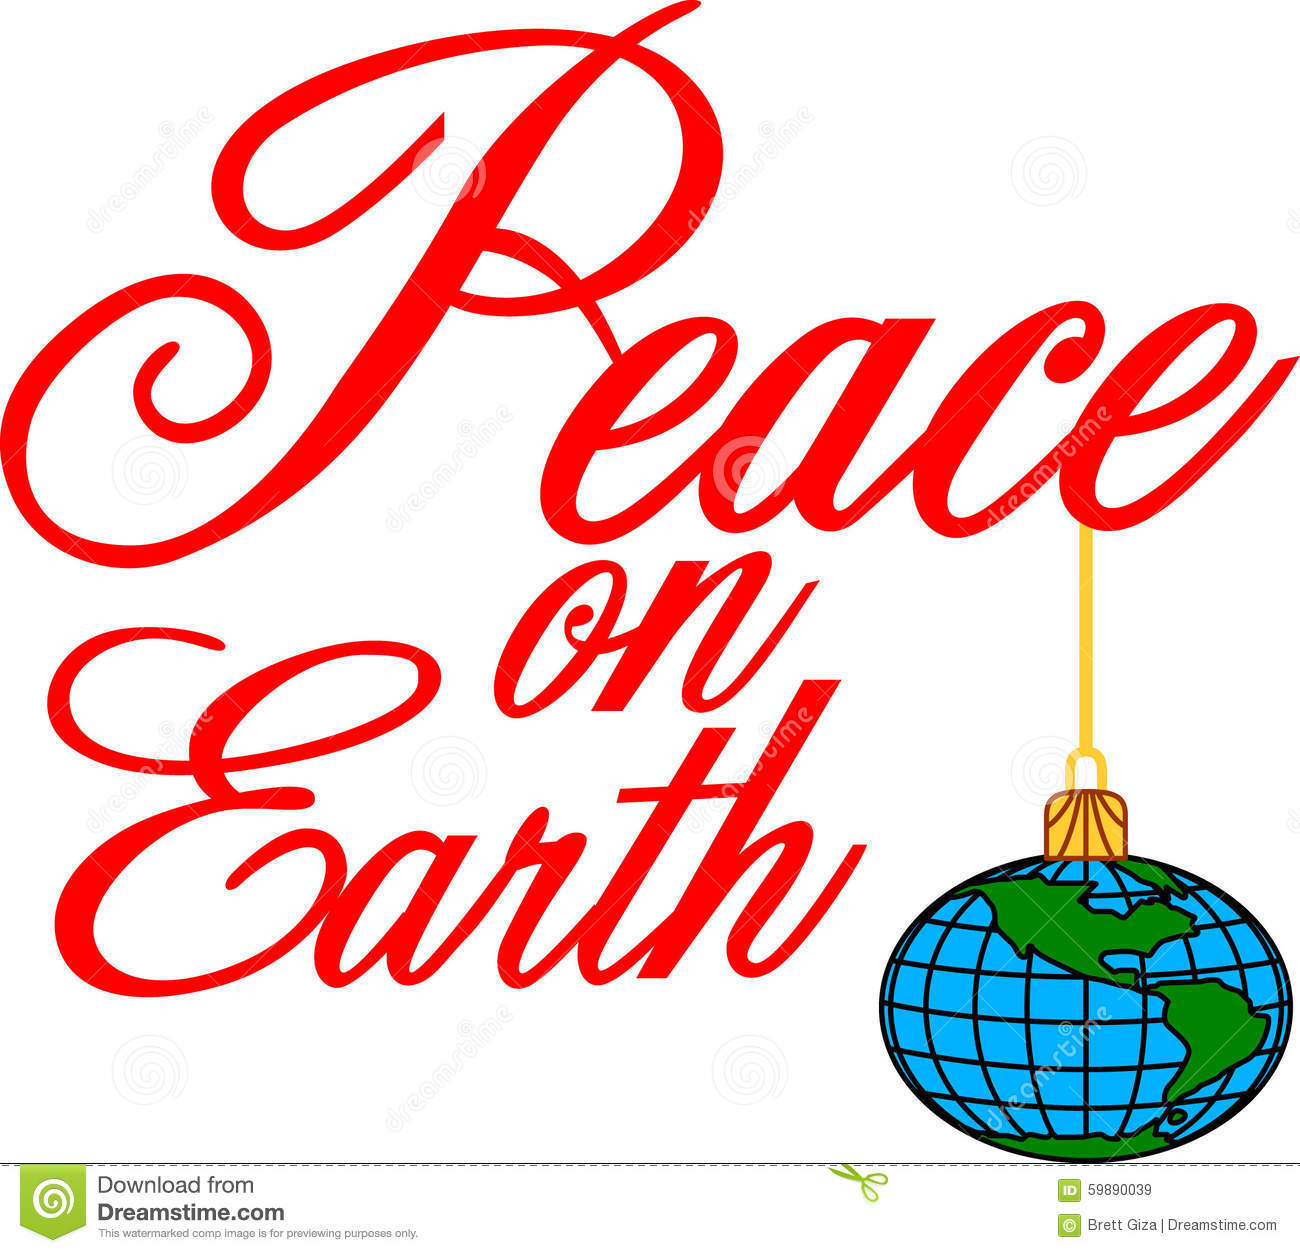 free christmas peace on earth clipart - photo #29